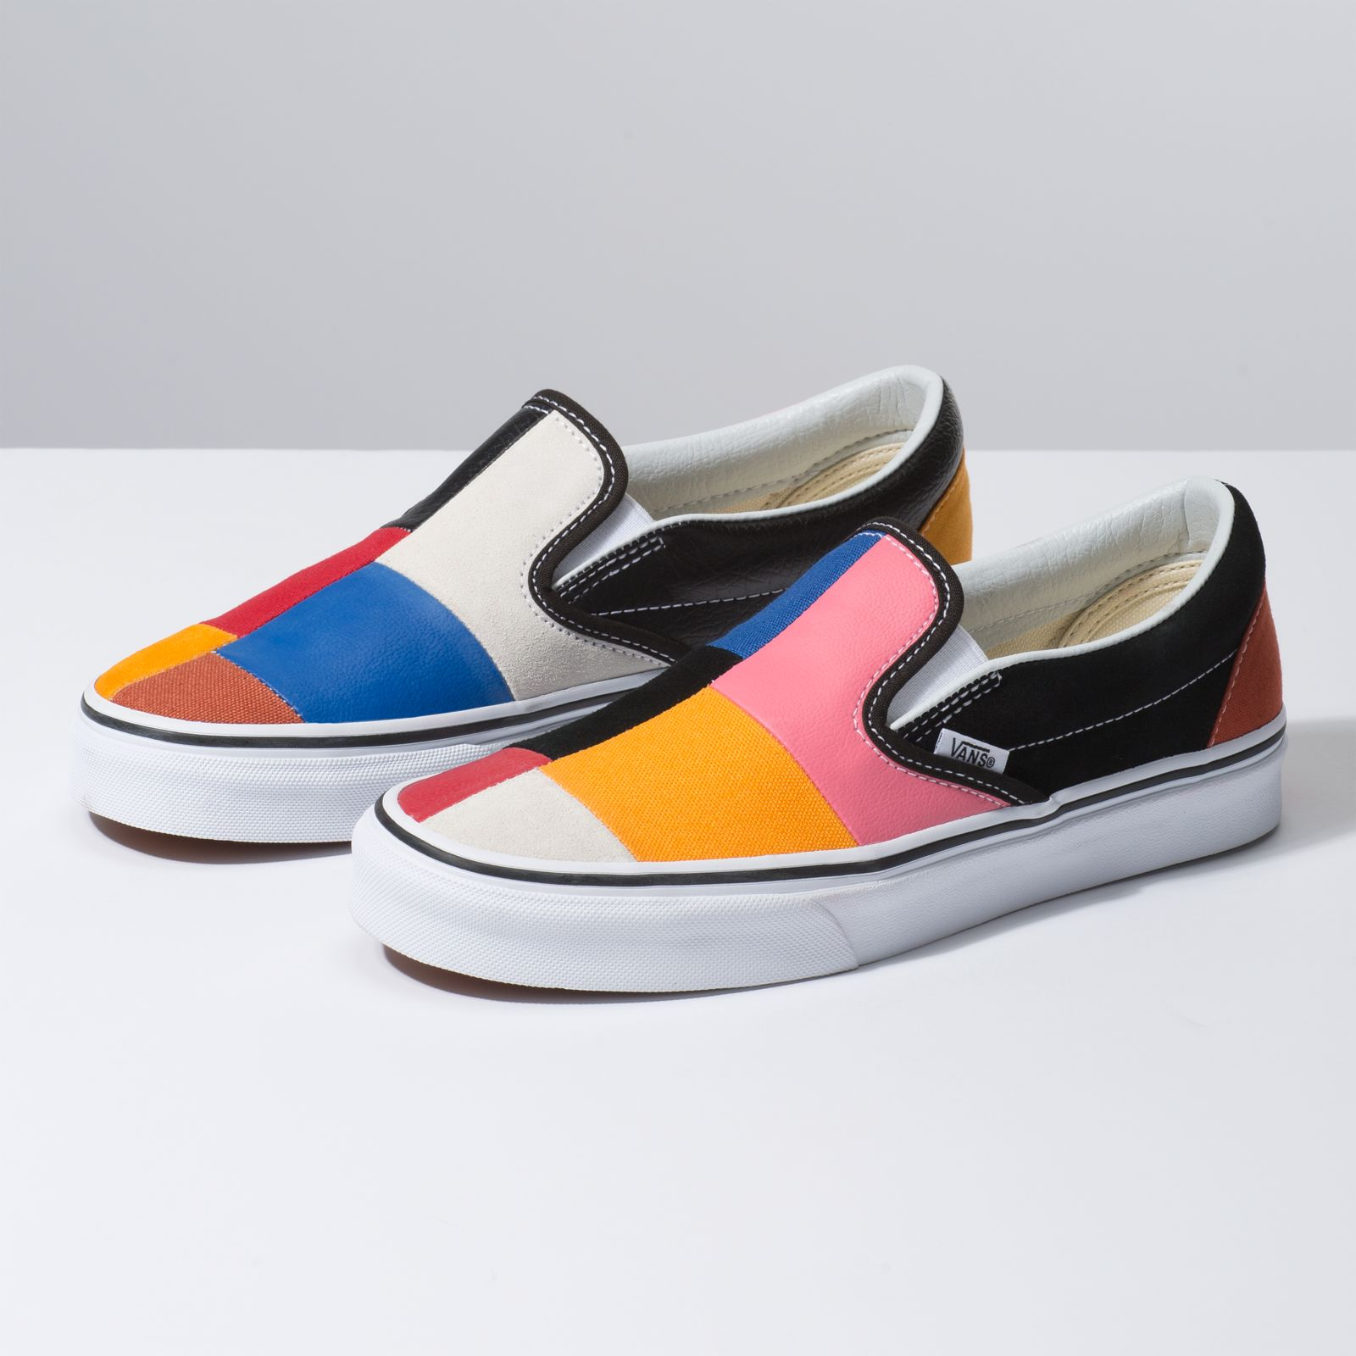 Vans Patchwork Patchwork Patchwork Slip On Mulitcolore Uomo (Dimensione 6.5, 6, 5.5) LIMITED SOLD OUT c9cd28